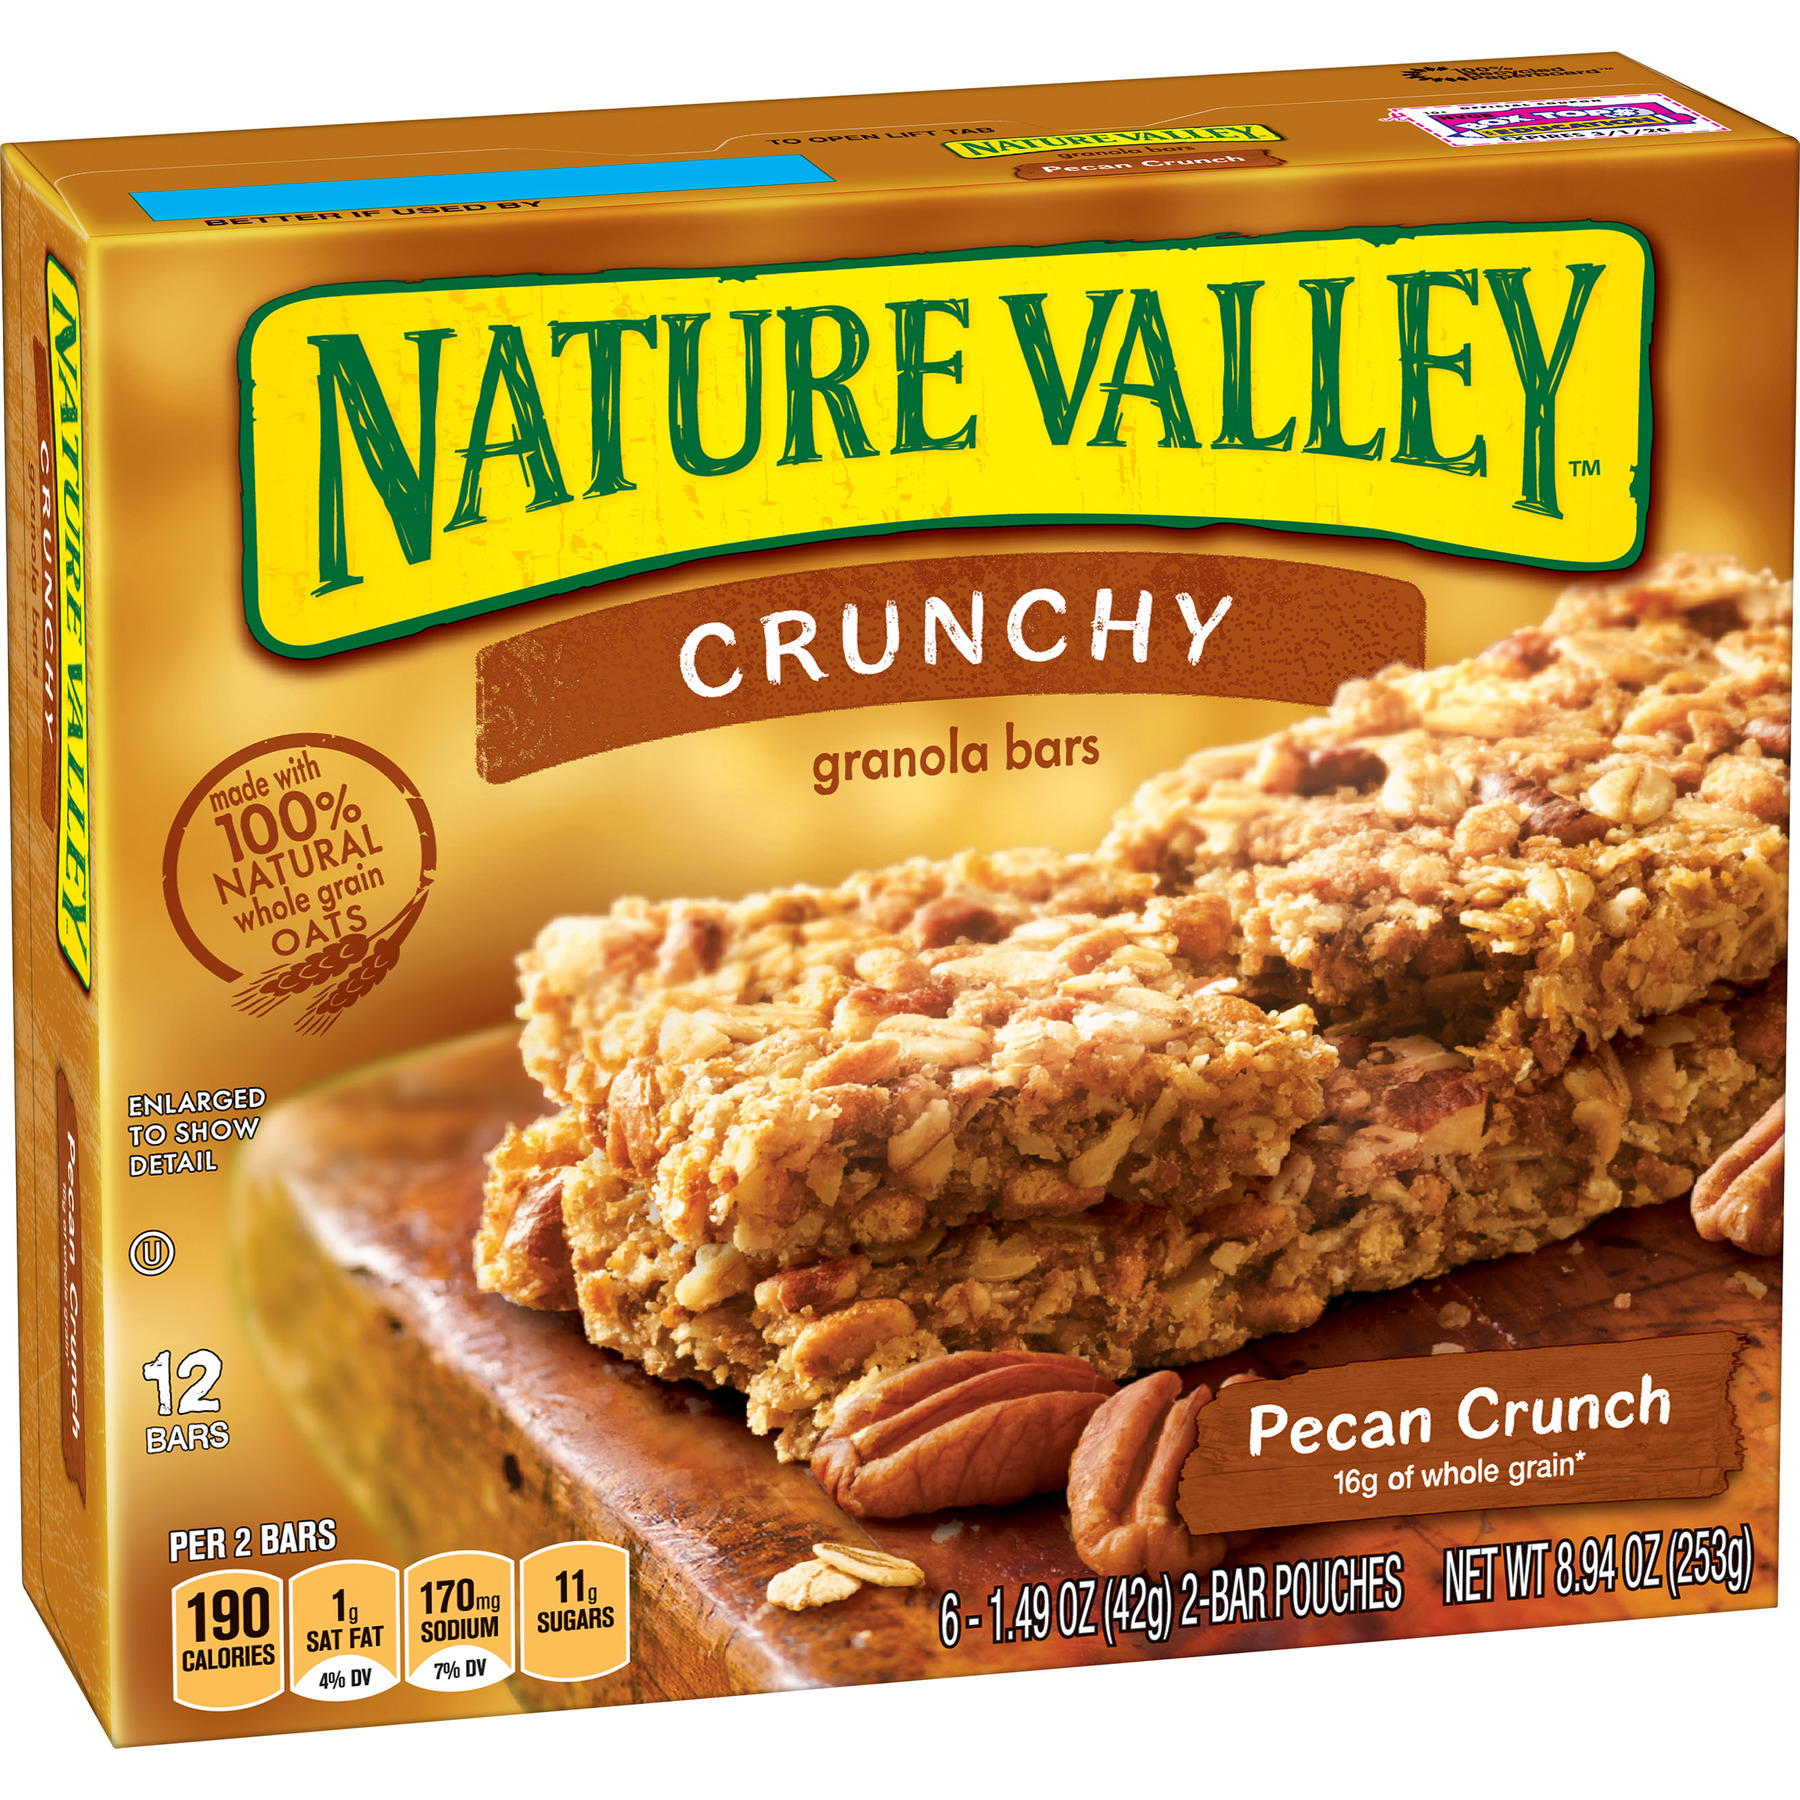 Nature Valley Granola Bars Crunchy Pecan Crunch 6 ct, 8.94 oz Box